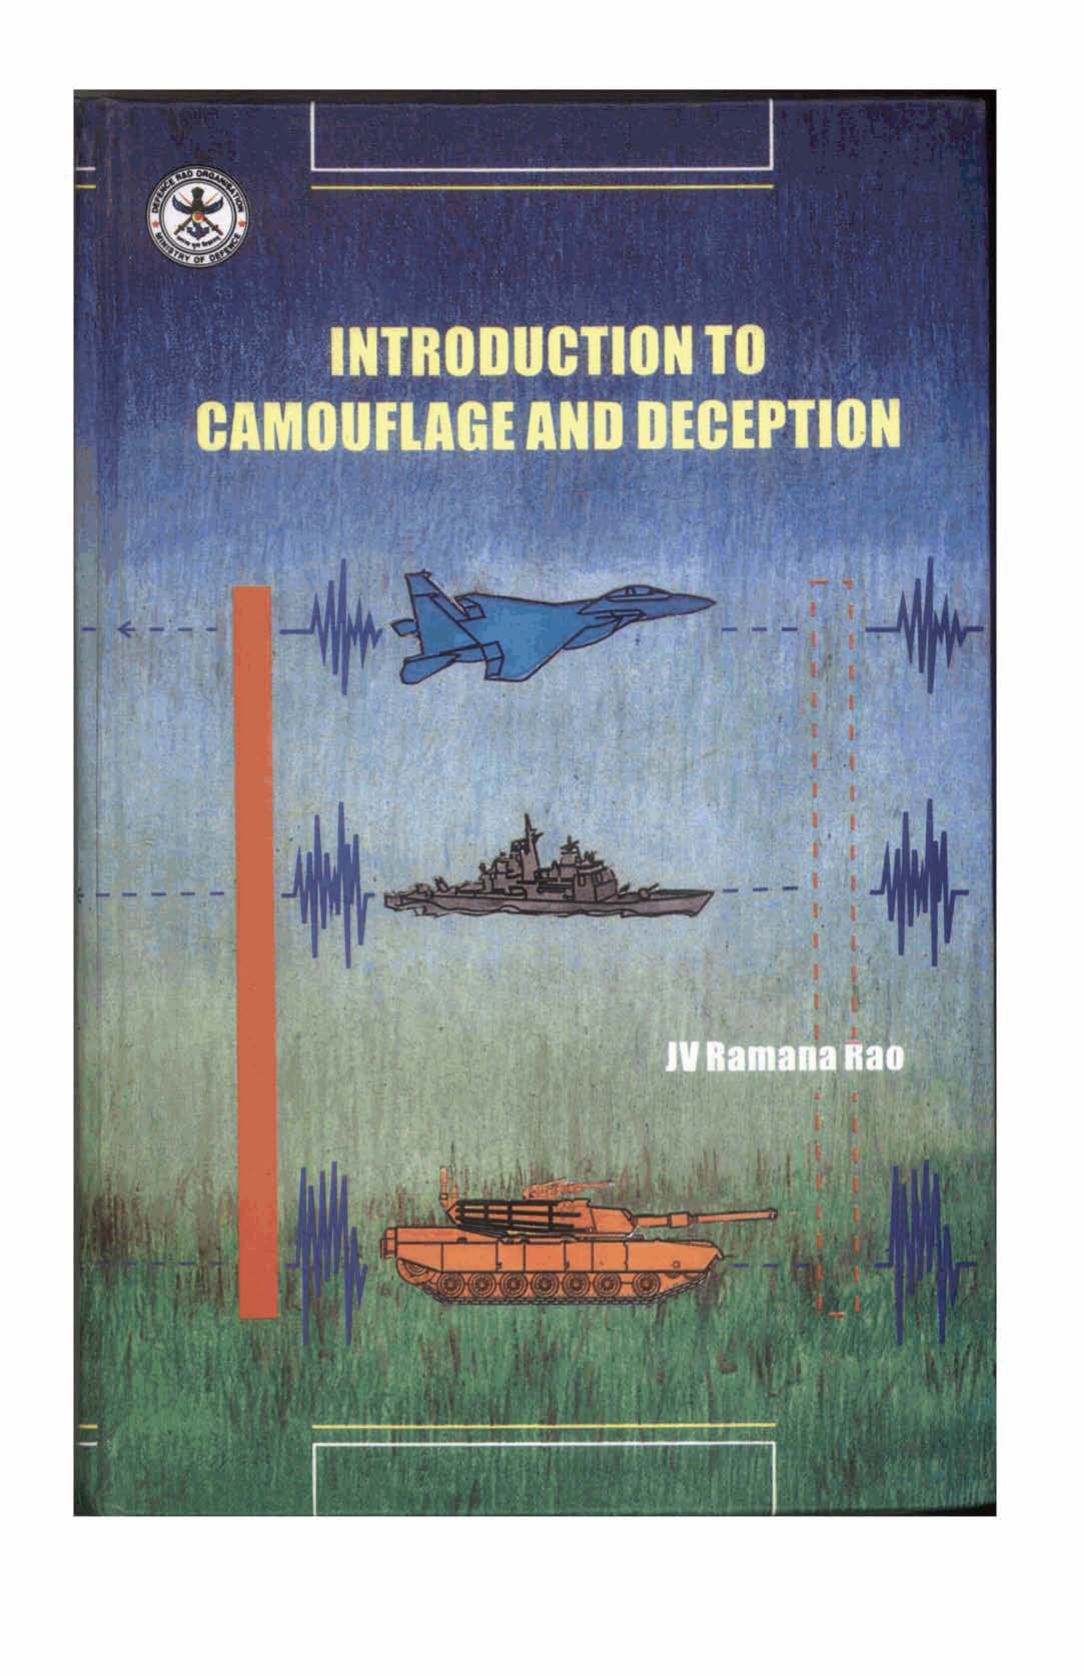 Introduction To Camouflage And Deception 7 Way Trailer Plug Wiring Diagram Contrail 017152685 1 24c3a5cc38a0e7655c35499c01e40a95